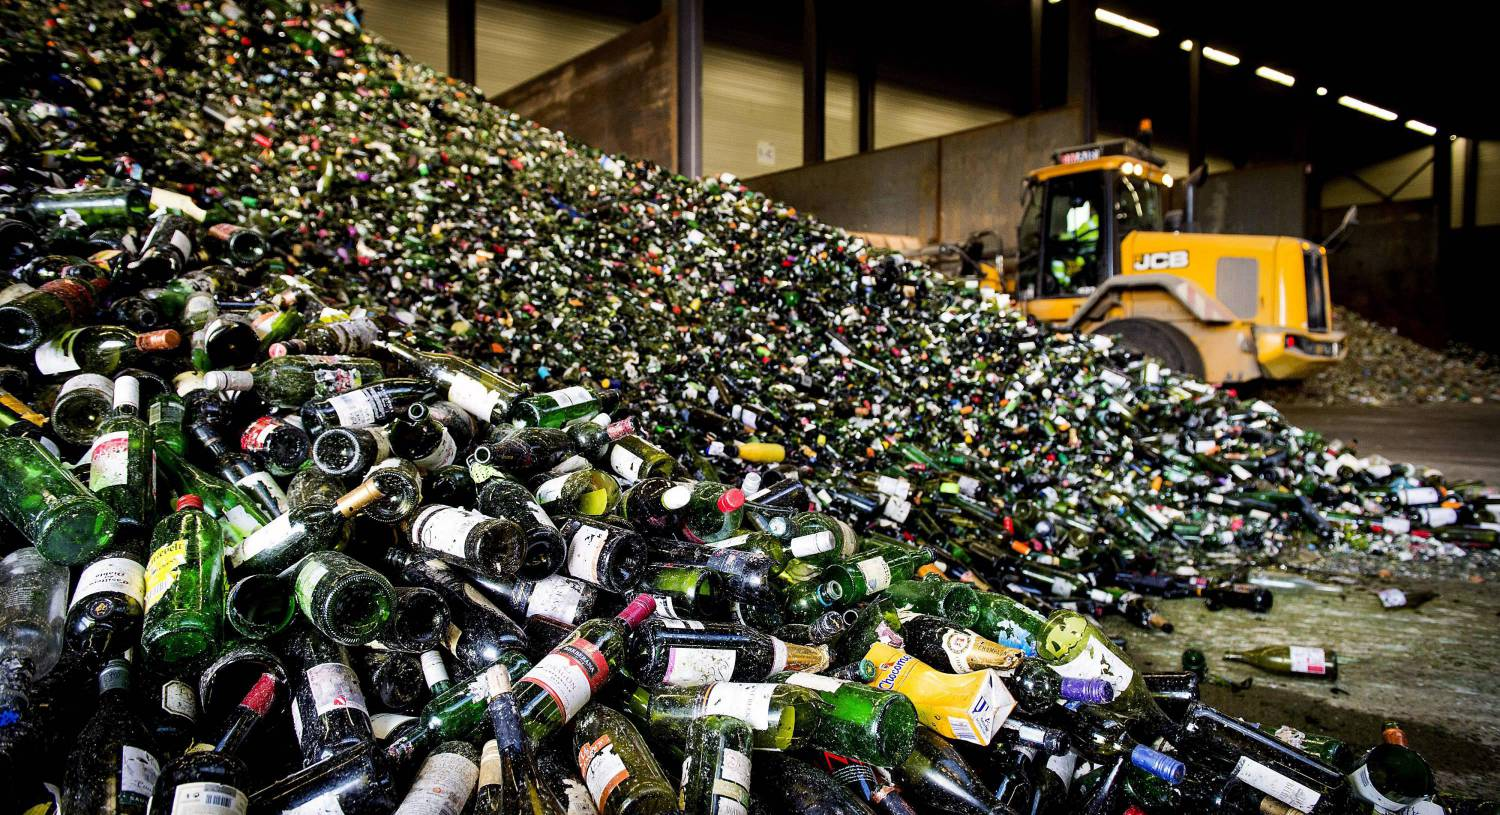 Victoria White: We need refundable deposits for bottles to tackle littering